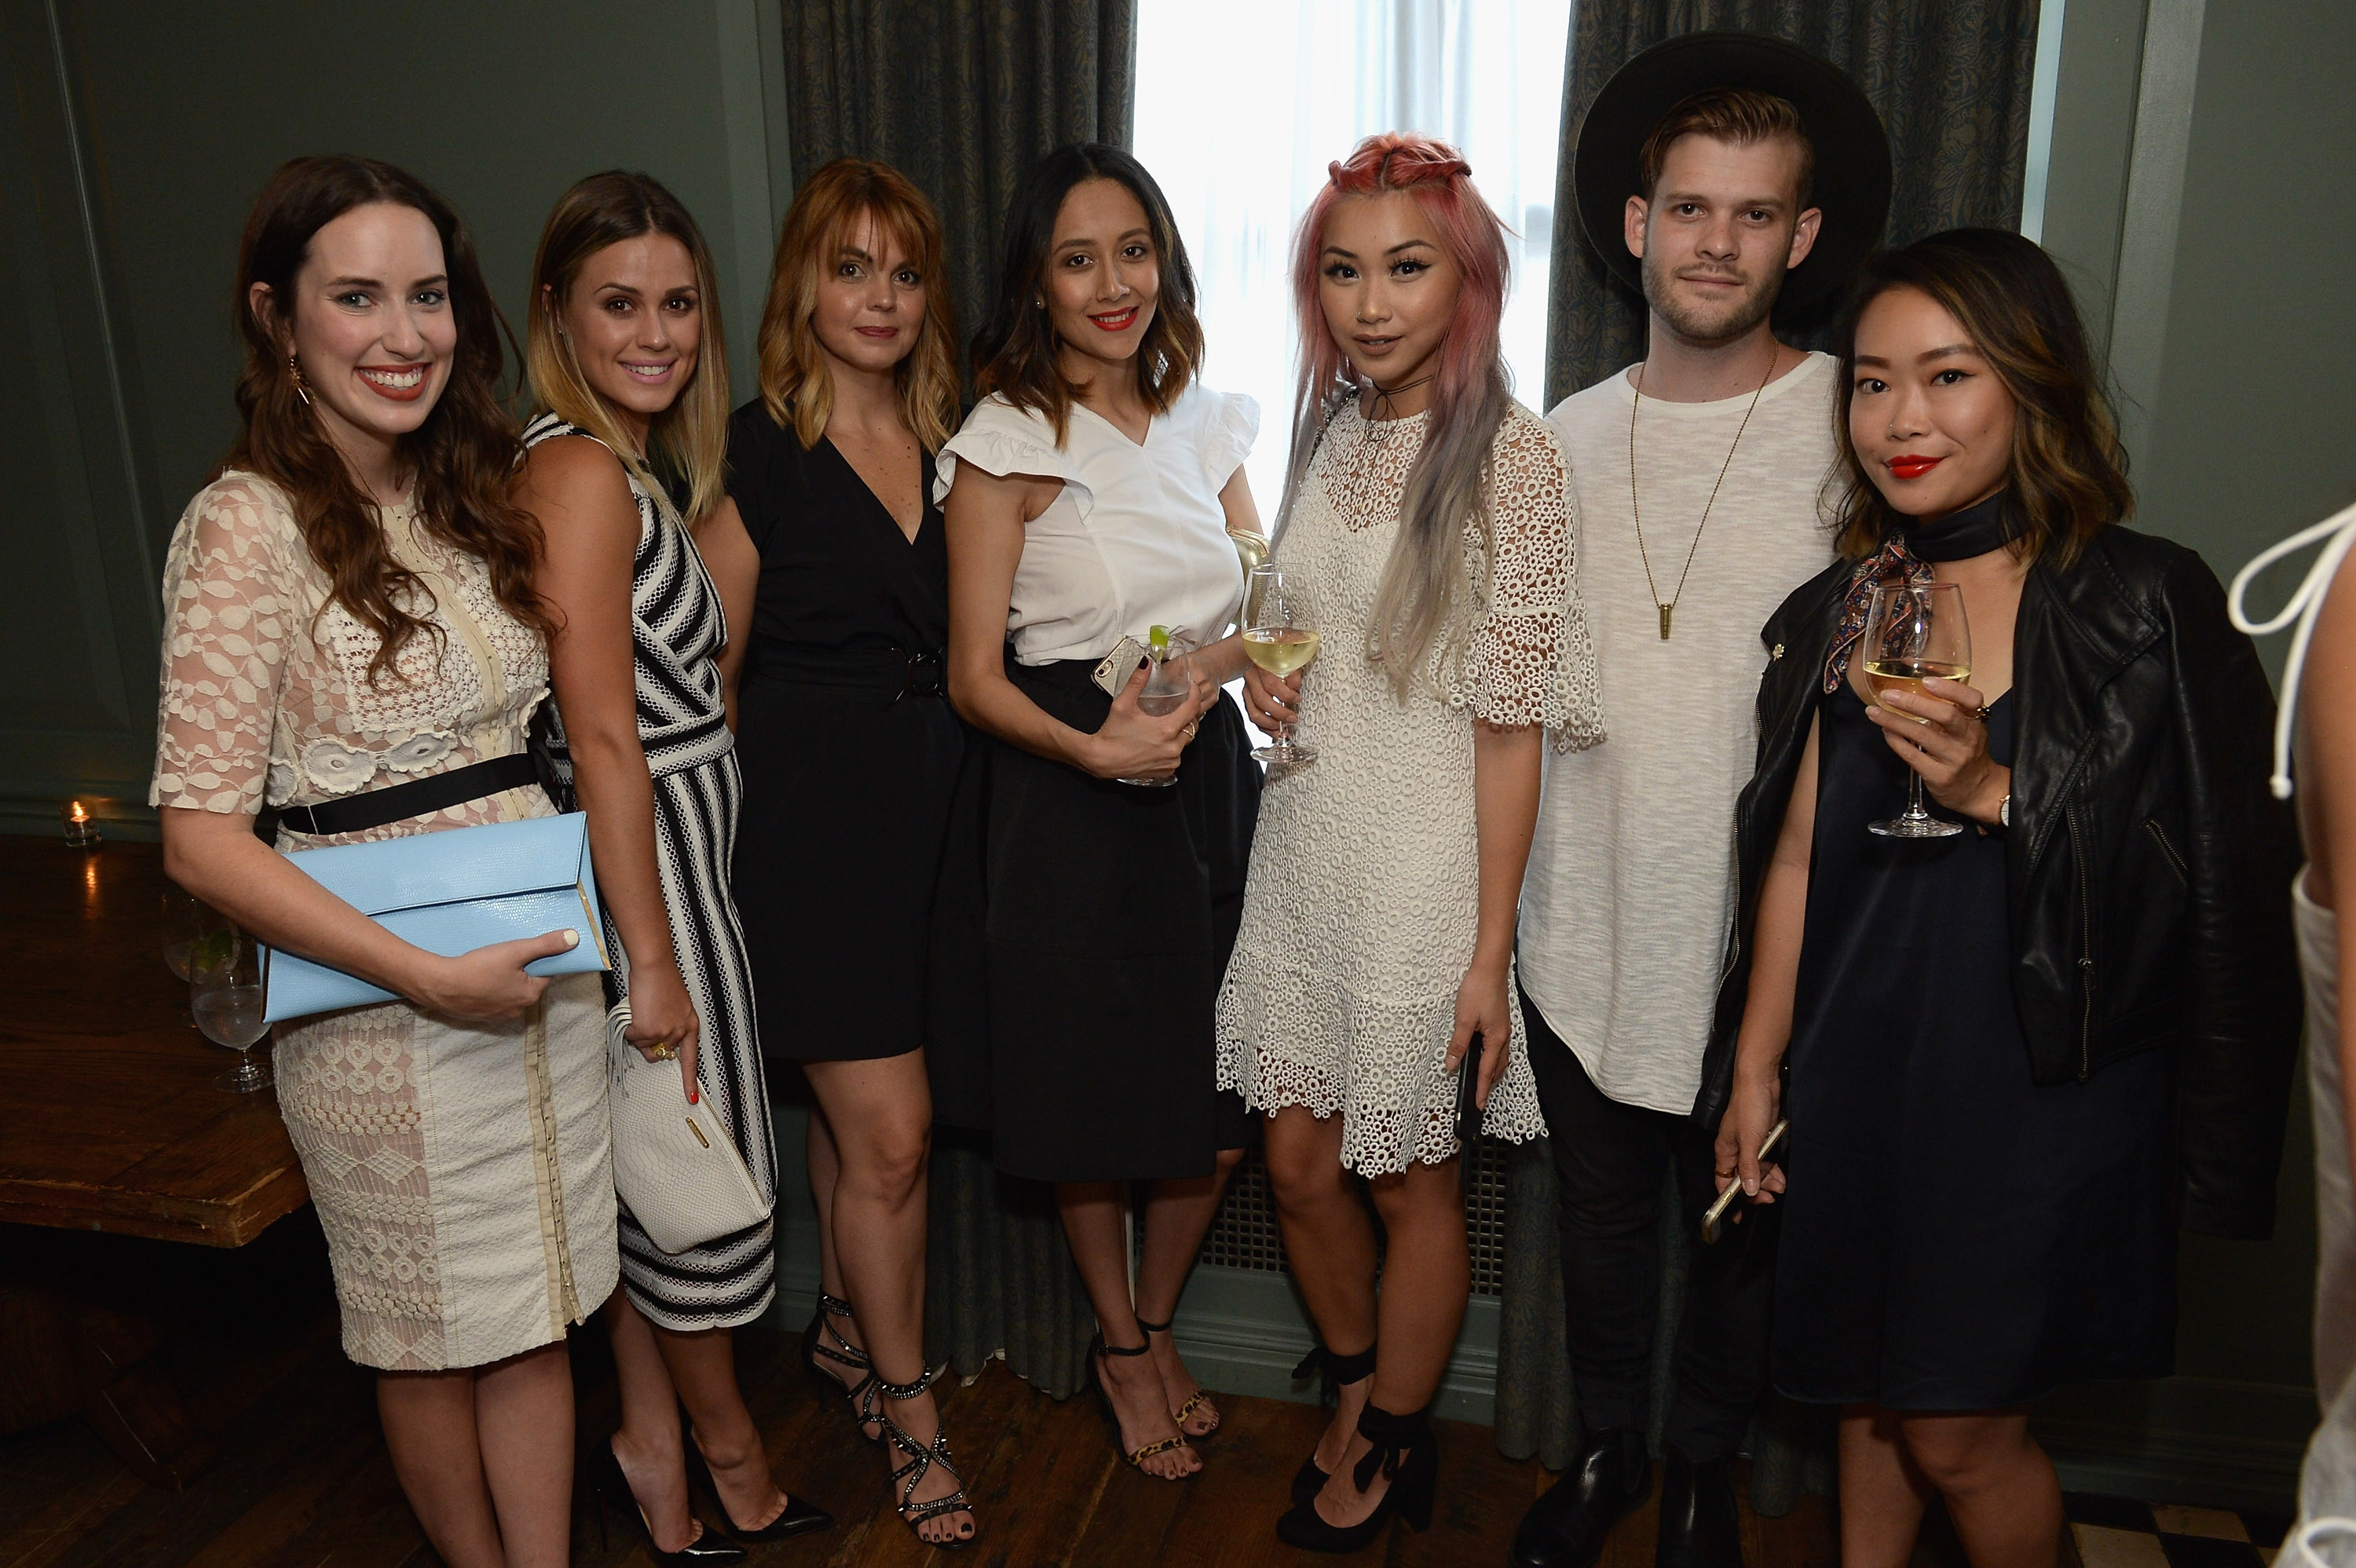 NEW YORK, NY - AUGUST 11: (L-R) Alice Kerley, Elly Brown, Allini Muller, Lilly B, Francis Lola, Josh Dowel, and guest attend the Ego Soleil Fashion Label Launch of SS17 Fashion Collection in New York City on August 11, 2016 in New York City. (Photo by Andrew Toth/Getty Images for Ego Soleil)